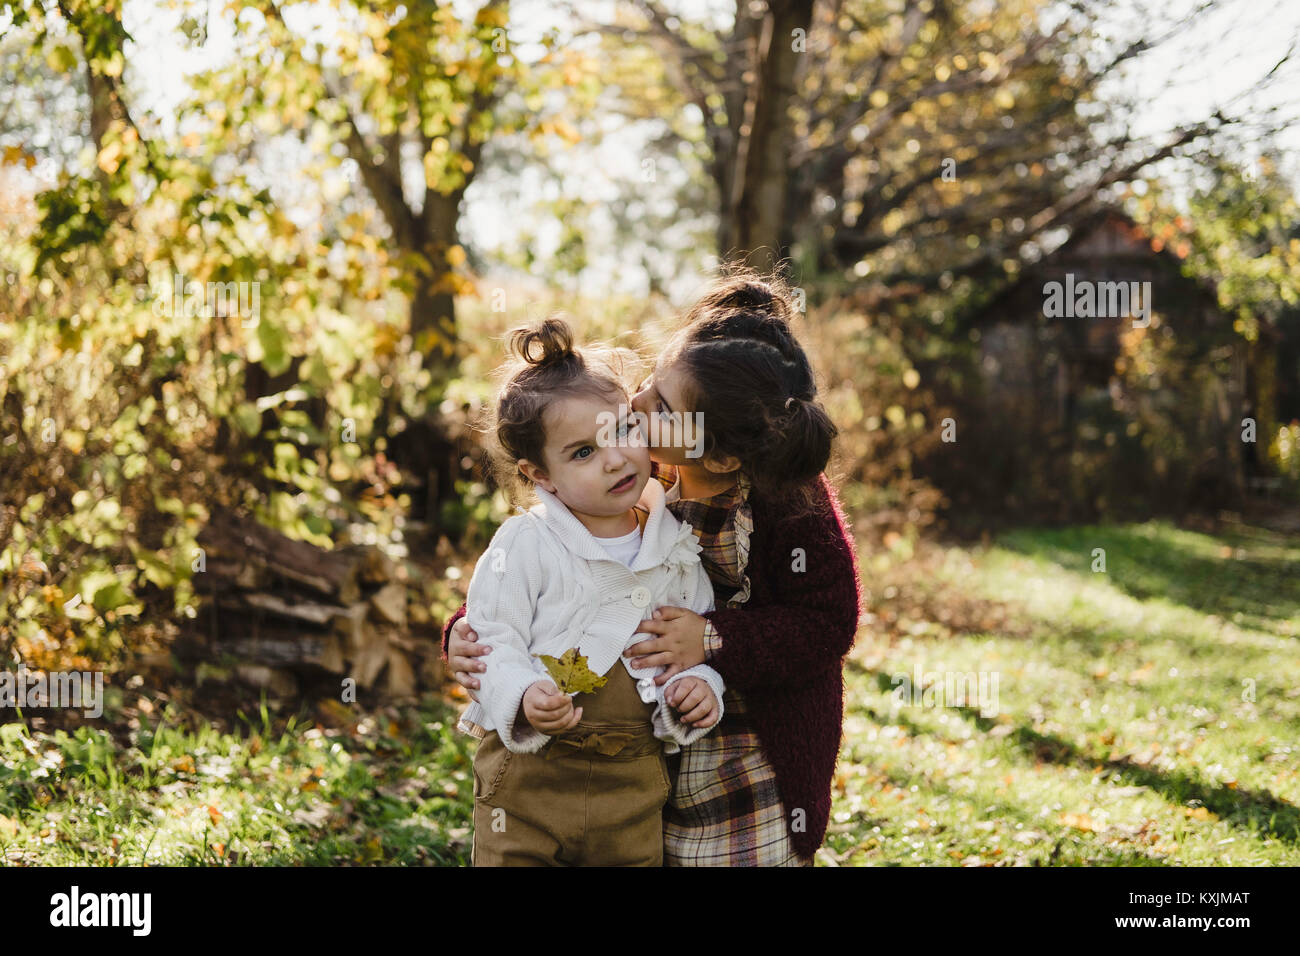 Girl hugging younger sister, in rural setting - Stock Image